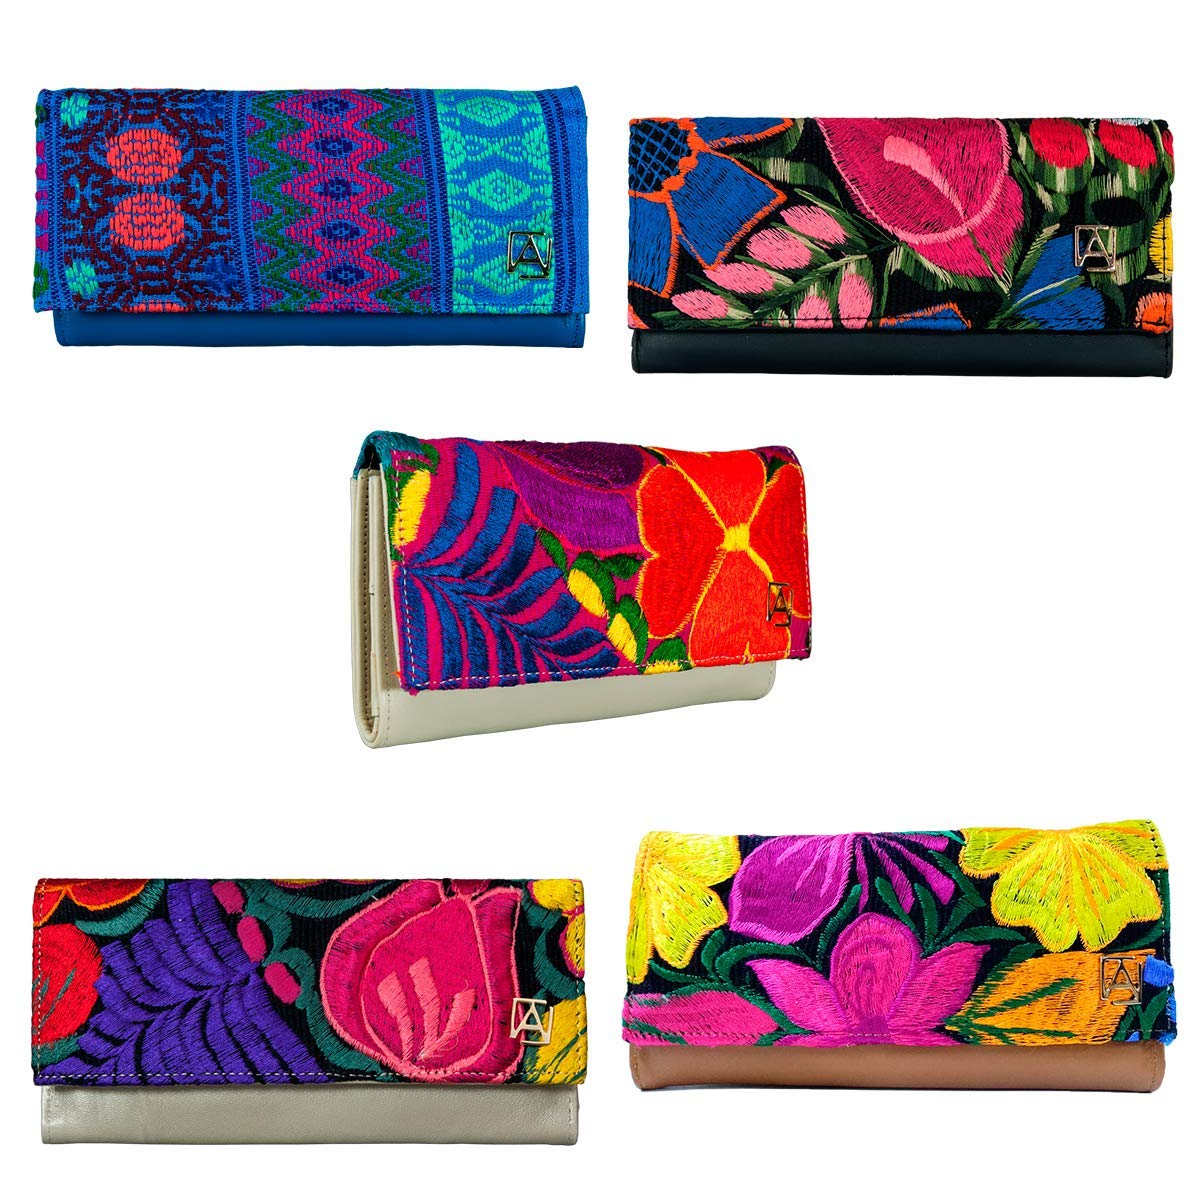 Amazon.com: Gold 01 model Tri-Fold leather Wallet with Artisan Embroidery. Original AngeLozano Brand. 0.79 x 4.72 x 3.54 inches: Handmade